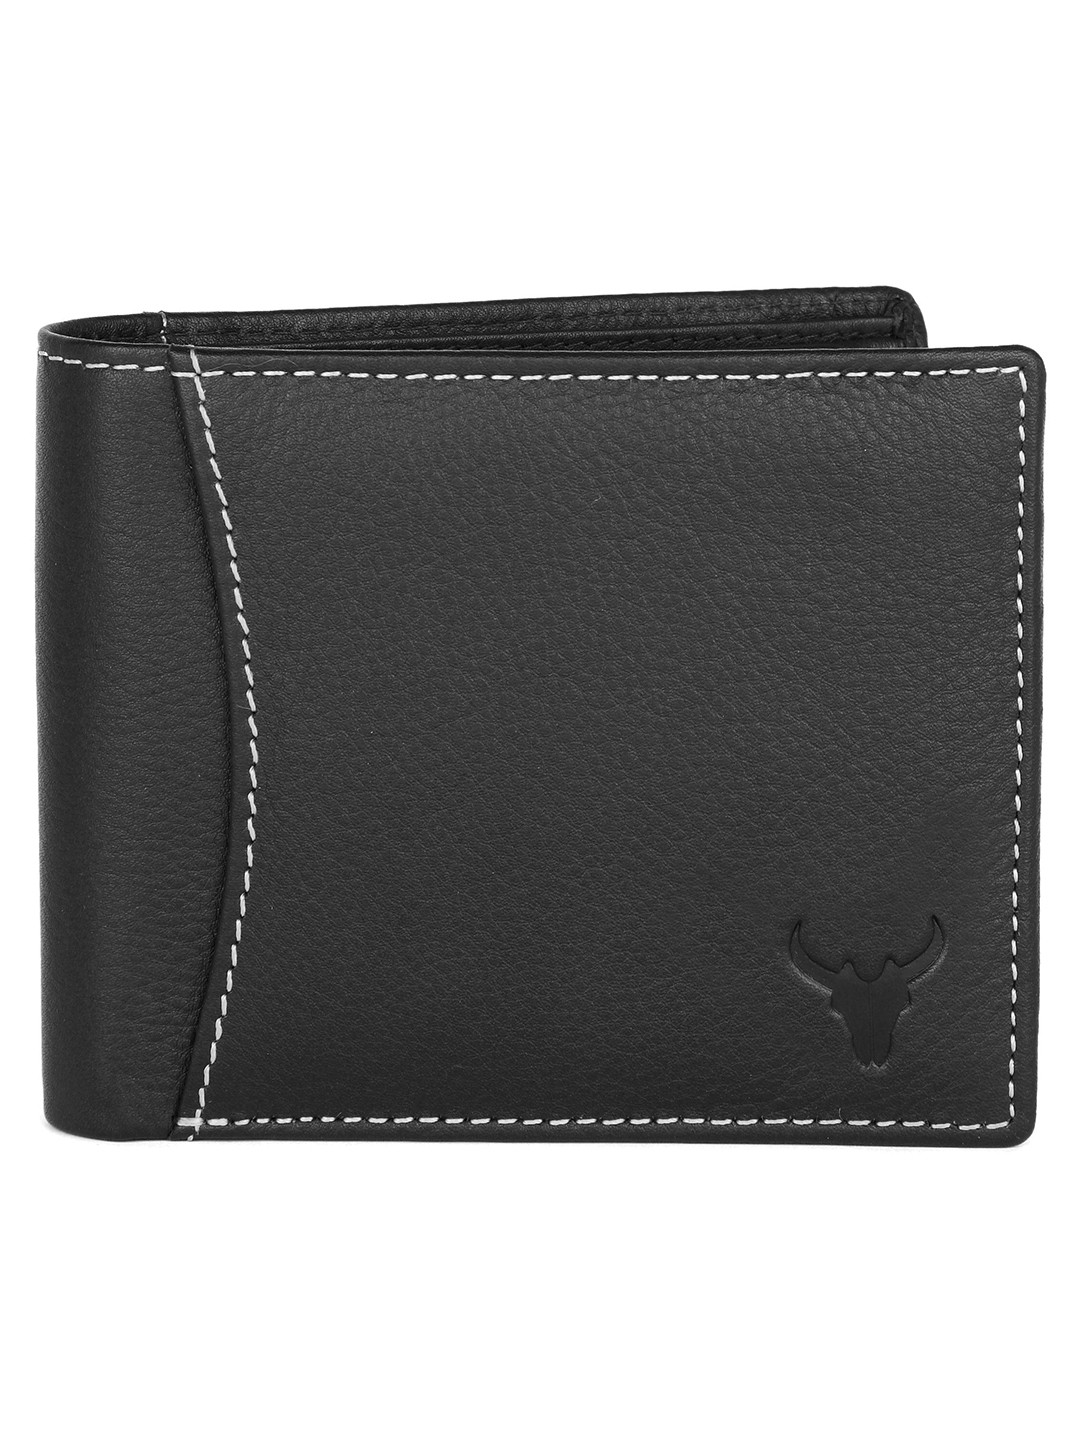 Napa Hide   Napa Hide RFID Protected Genuine High Quality Black Leather Wallet For Men